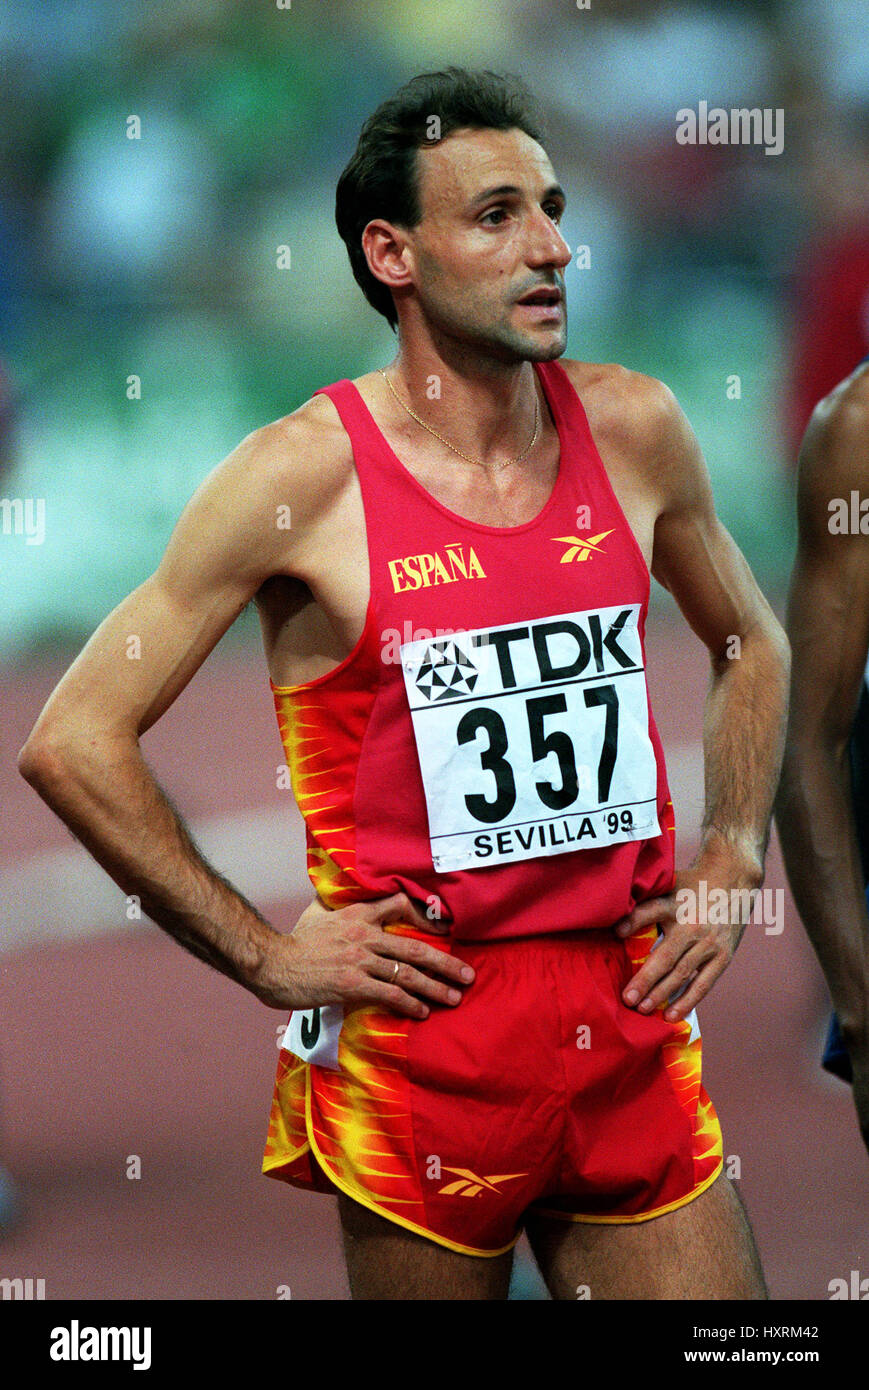 FERMIN CACHO 1500 METRES 24 August 1999 - Stock Image